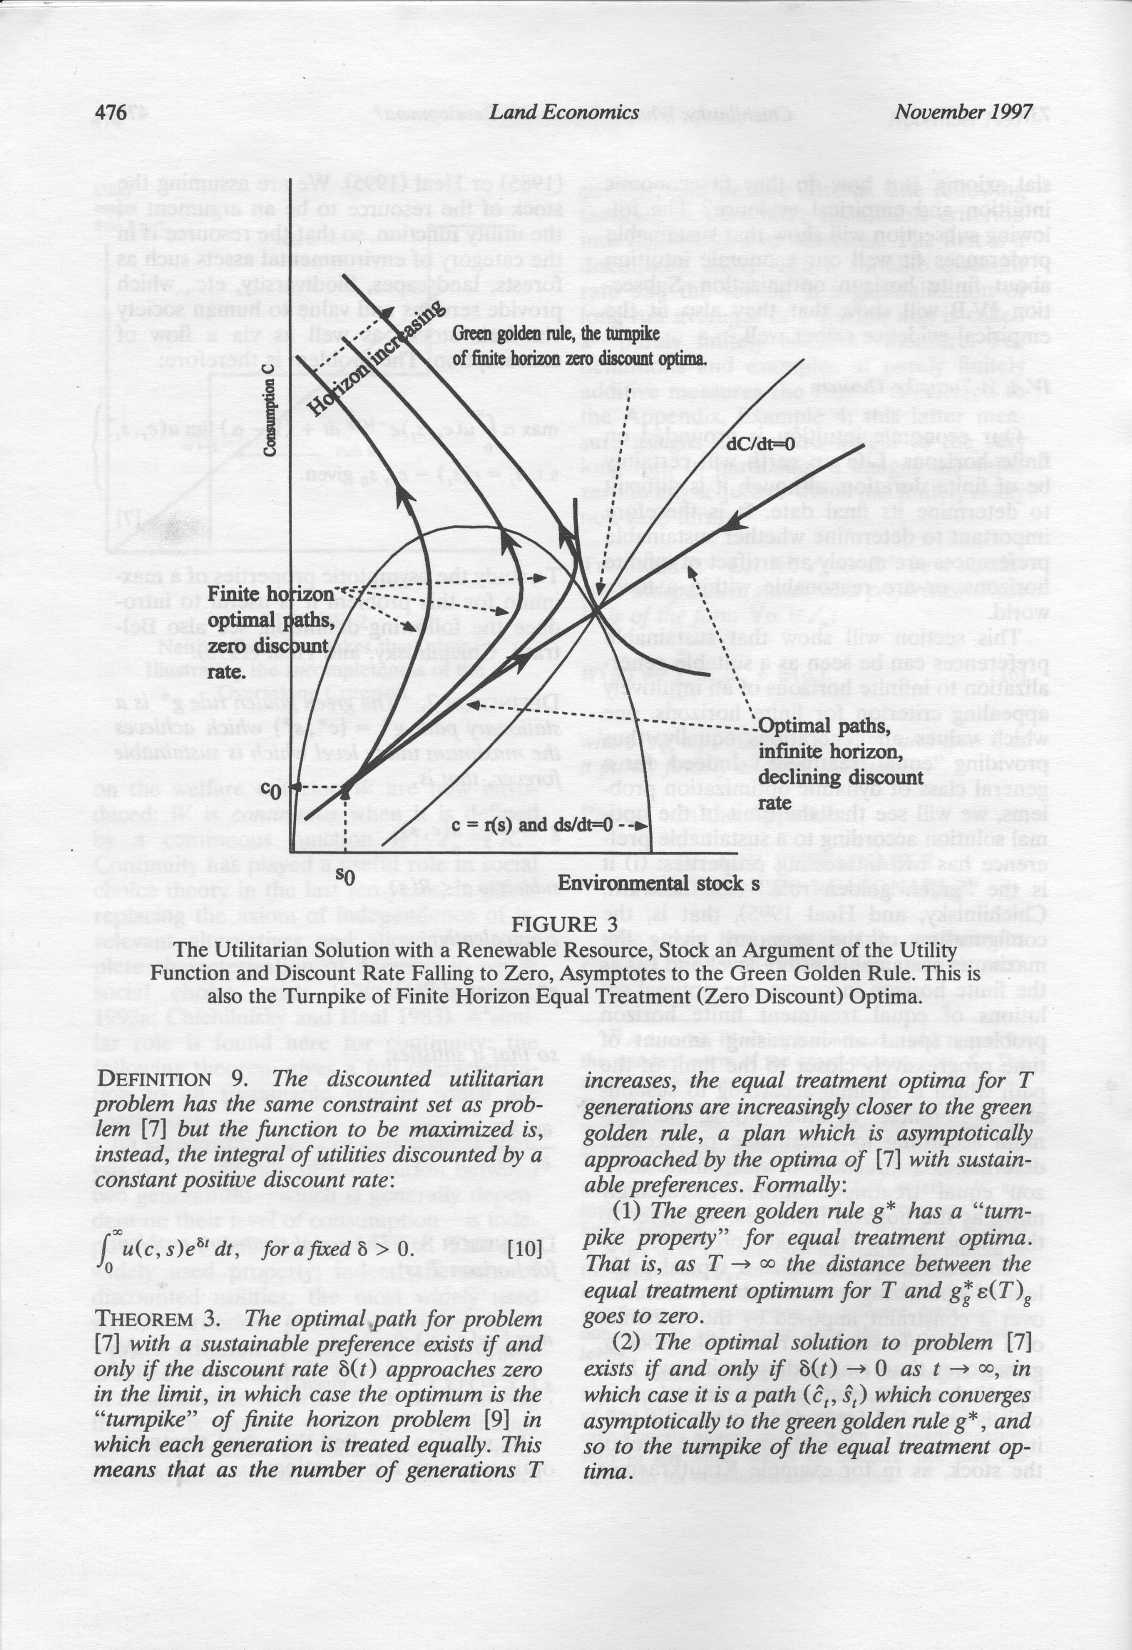 476 LandEconomics November 1997 -------------Optimal paths, infinite horizon, declining discount rate SO Environmental stock s FIGURE 3 The Utilitarian Solution with a Renewable Resource, Stock an